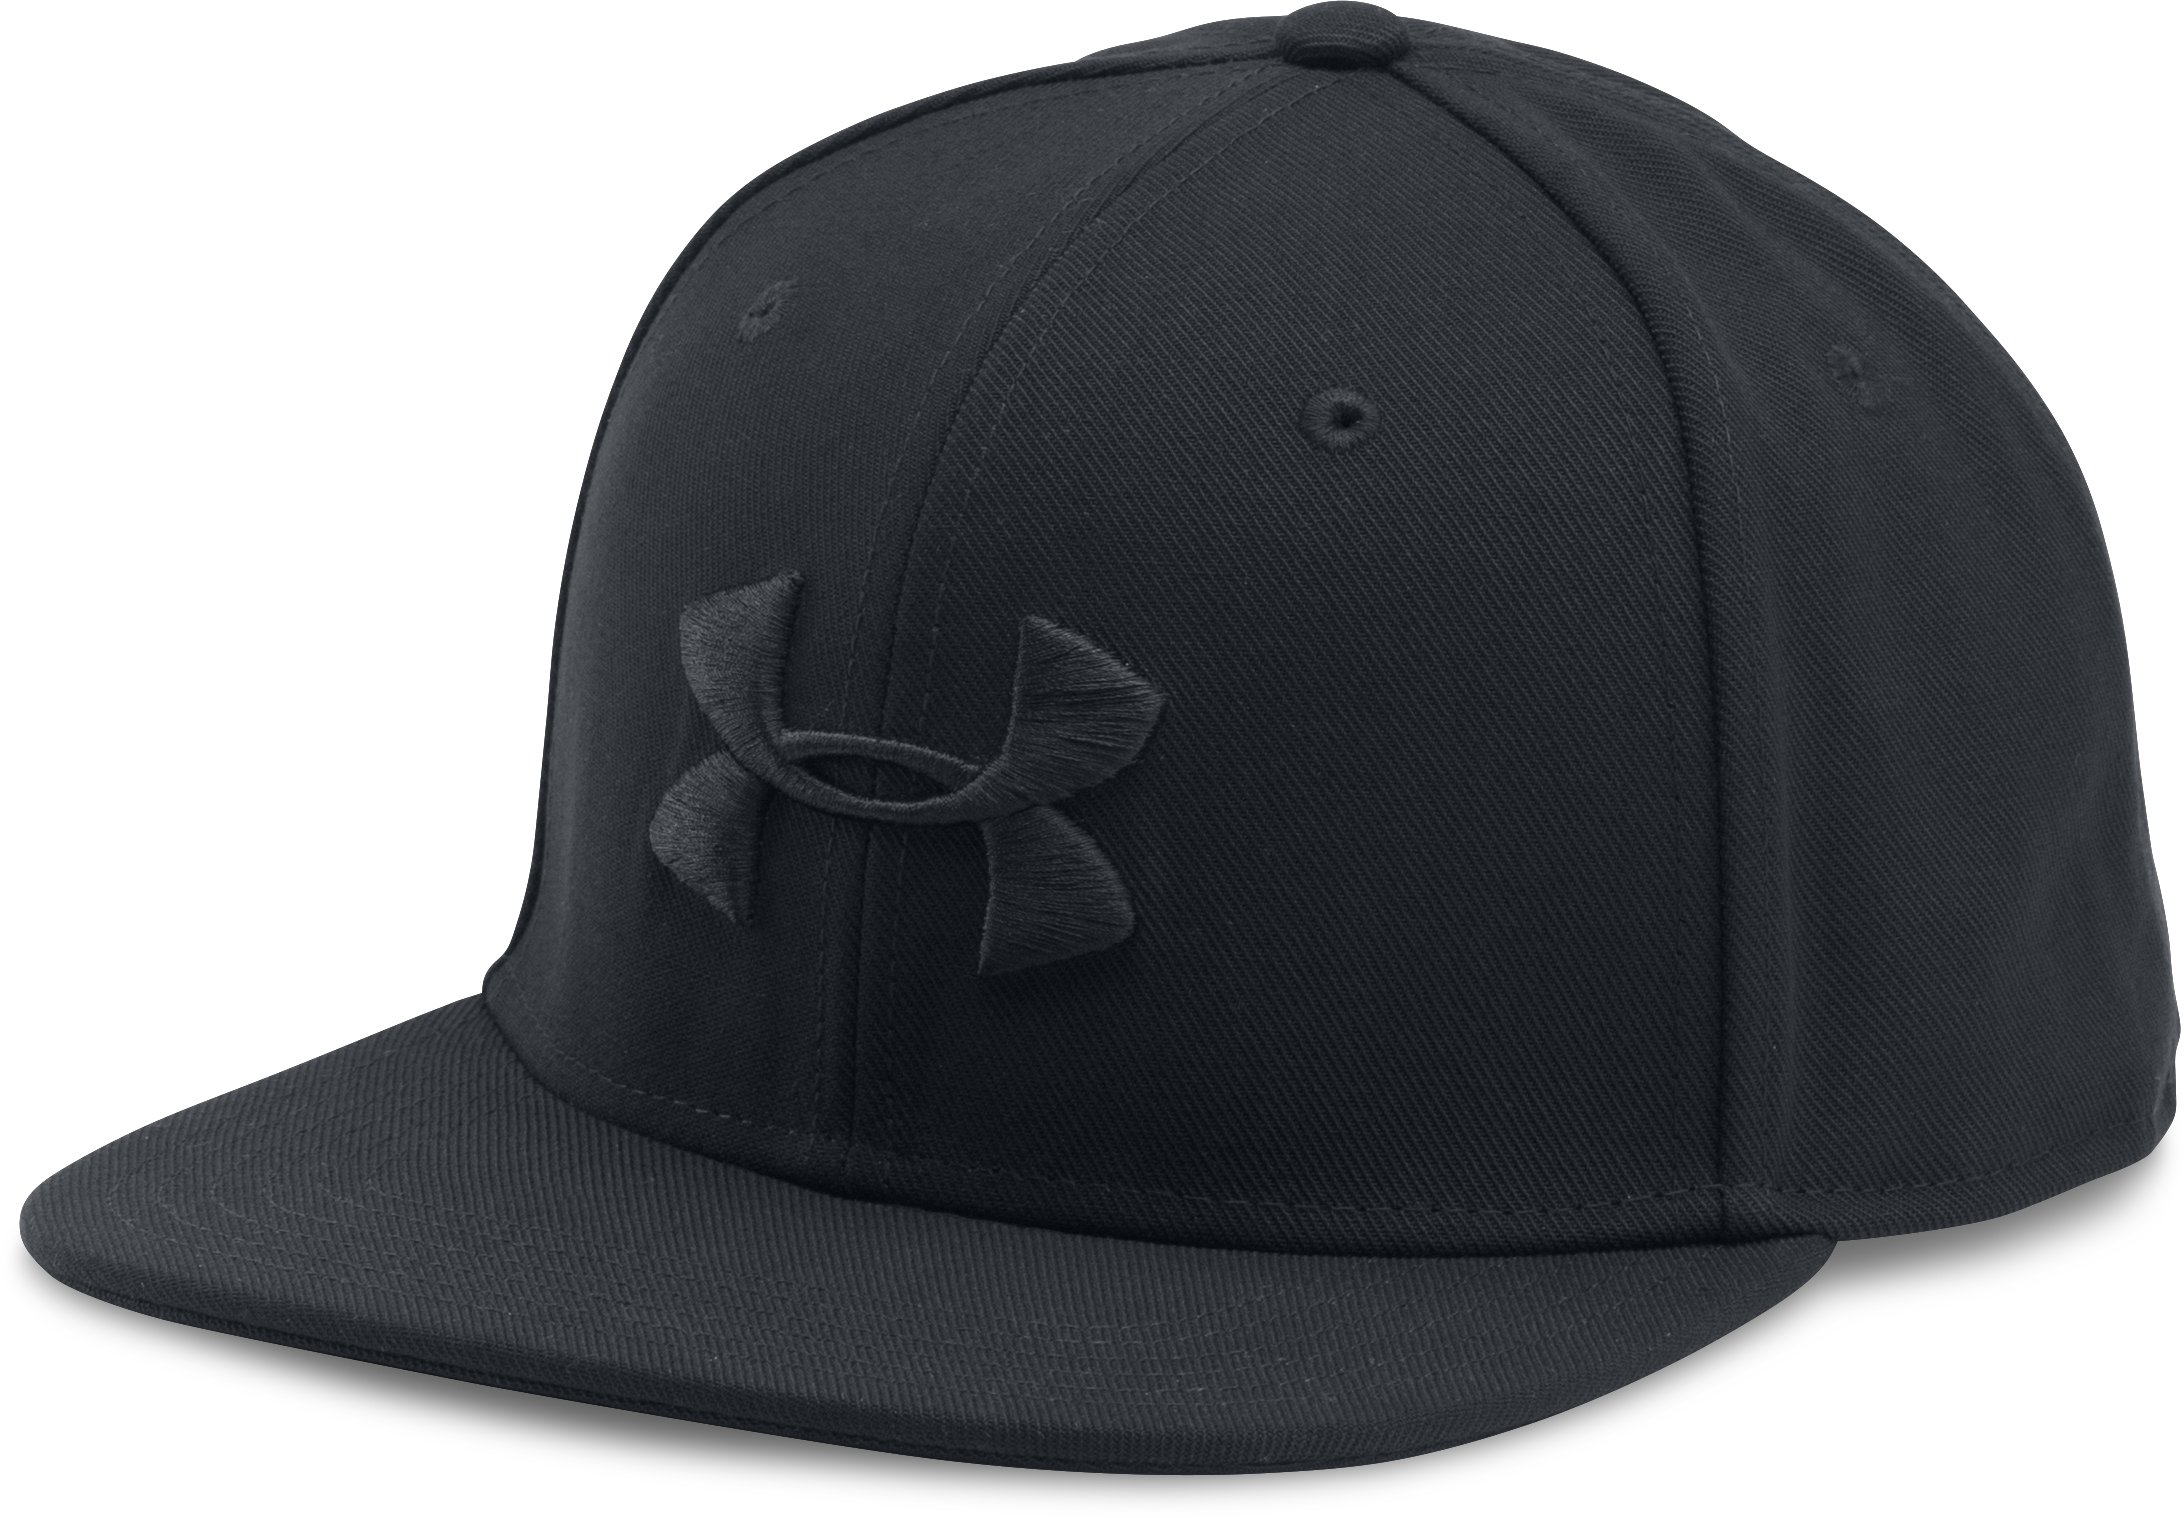 black snapback caps Men's UA Huddle Snapback Cap Colors matches good with black logo...Nice and comfortable....Love Snapbacks